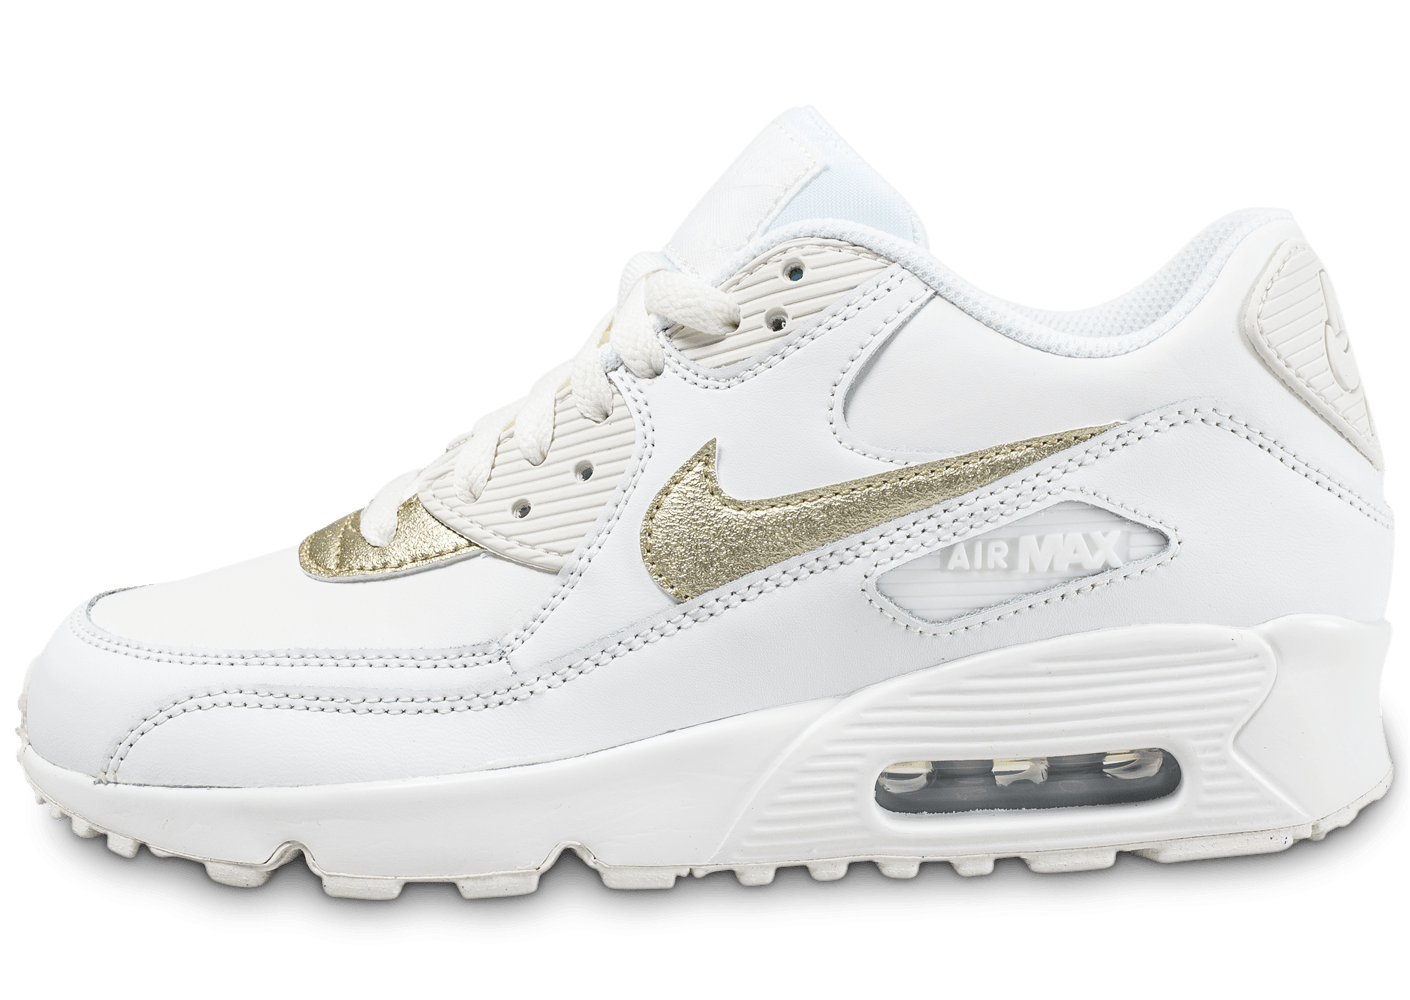 acheter en ligne a0a7f f808f Nike Air Max 90 Leather Junior blanche et or